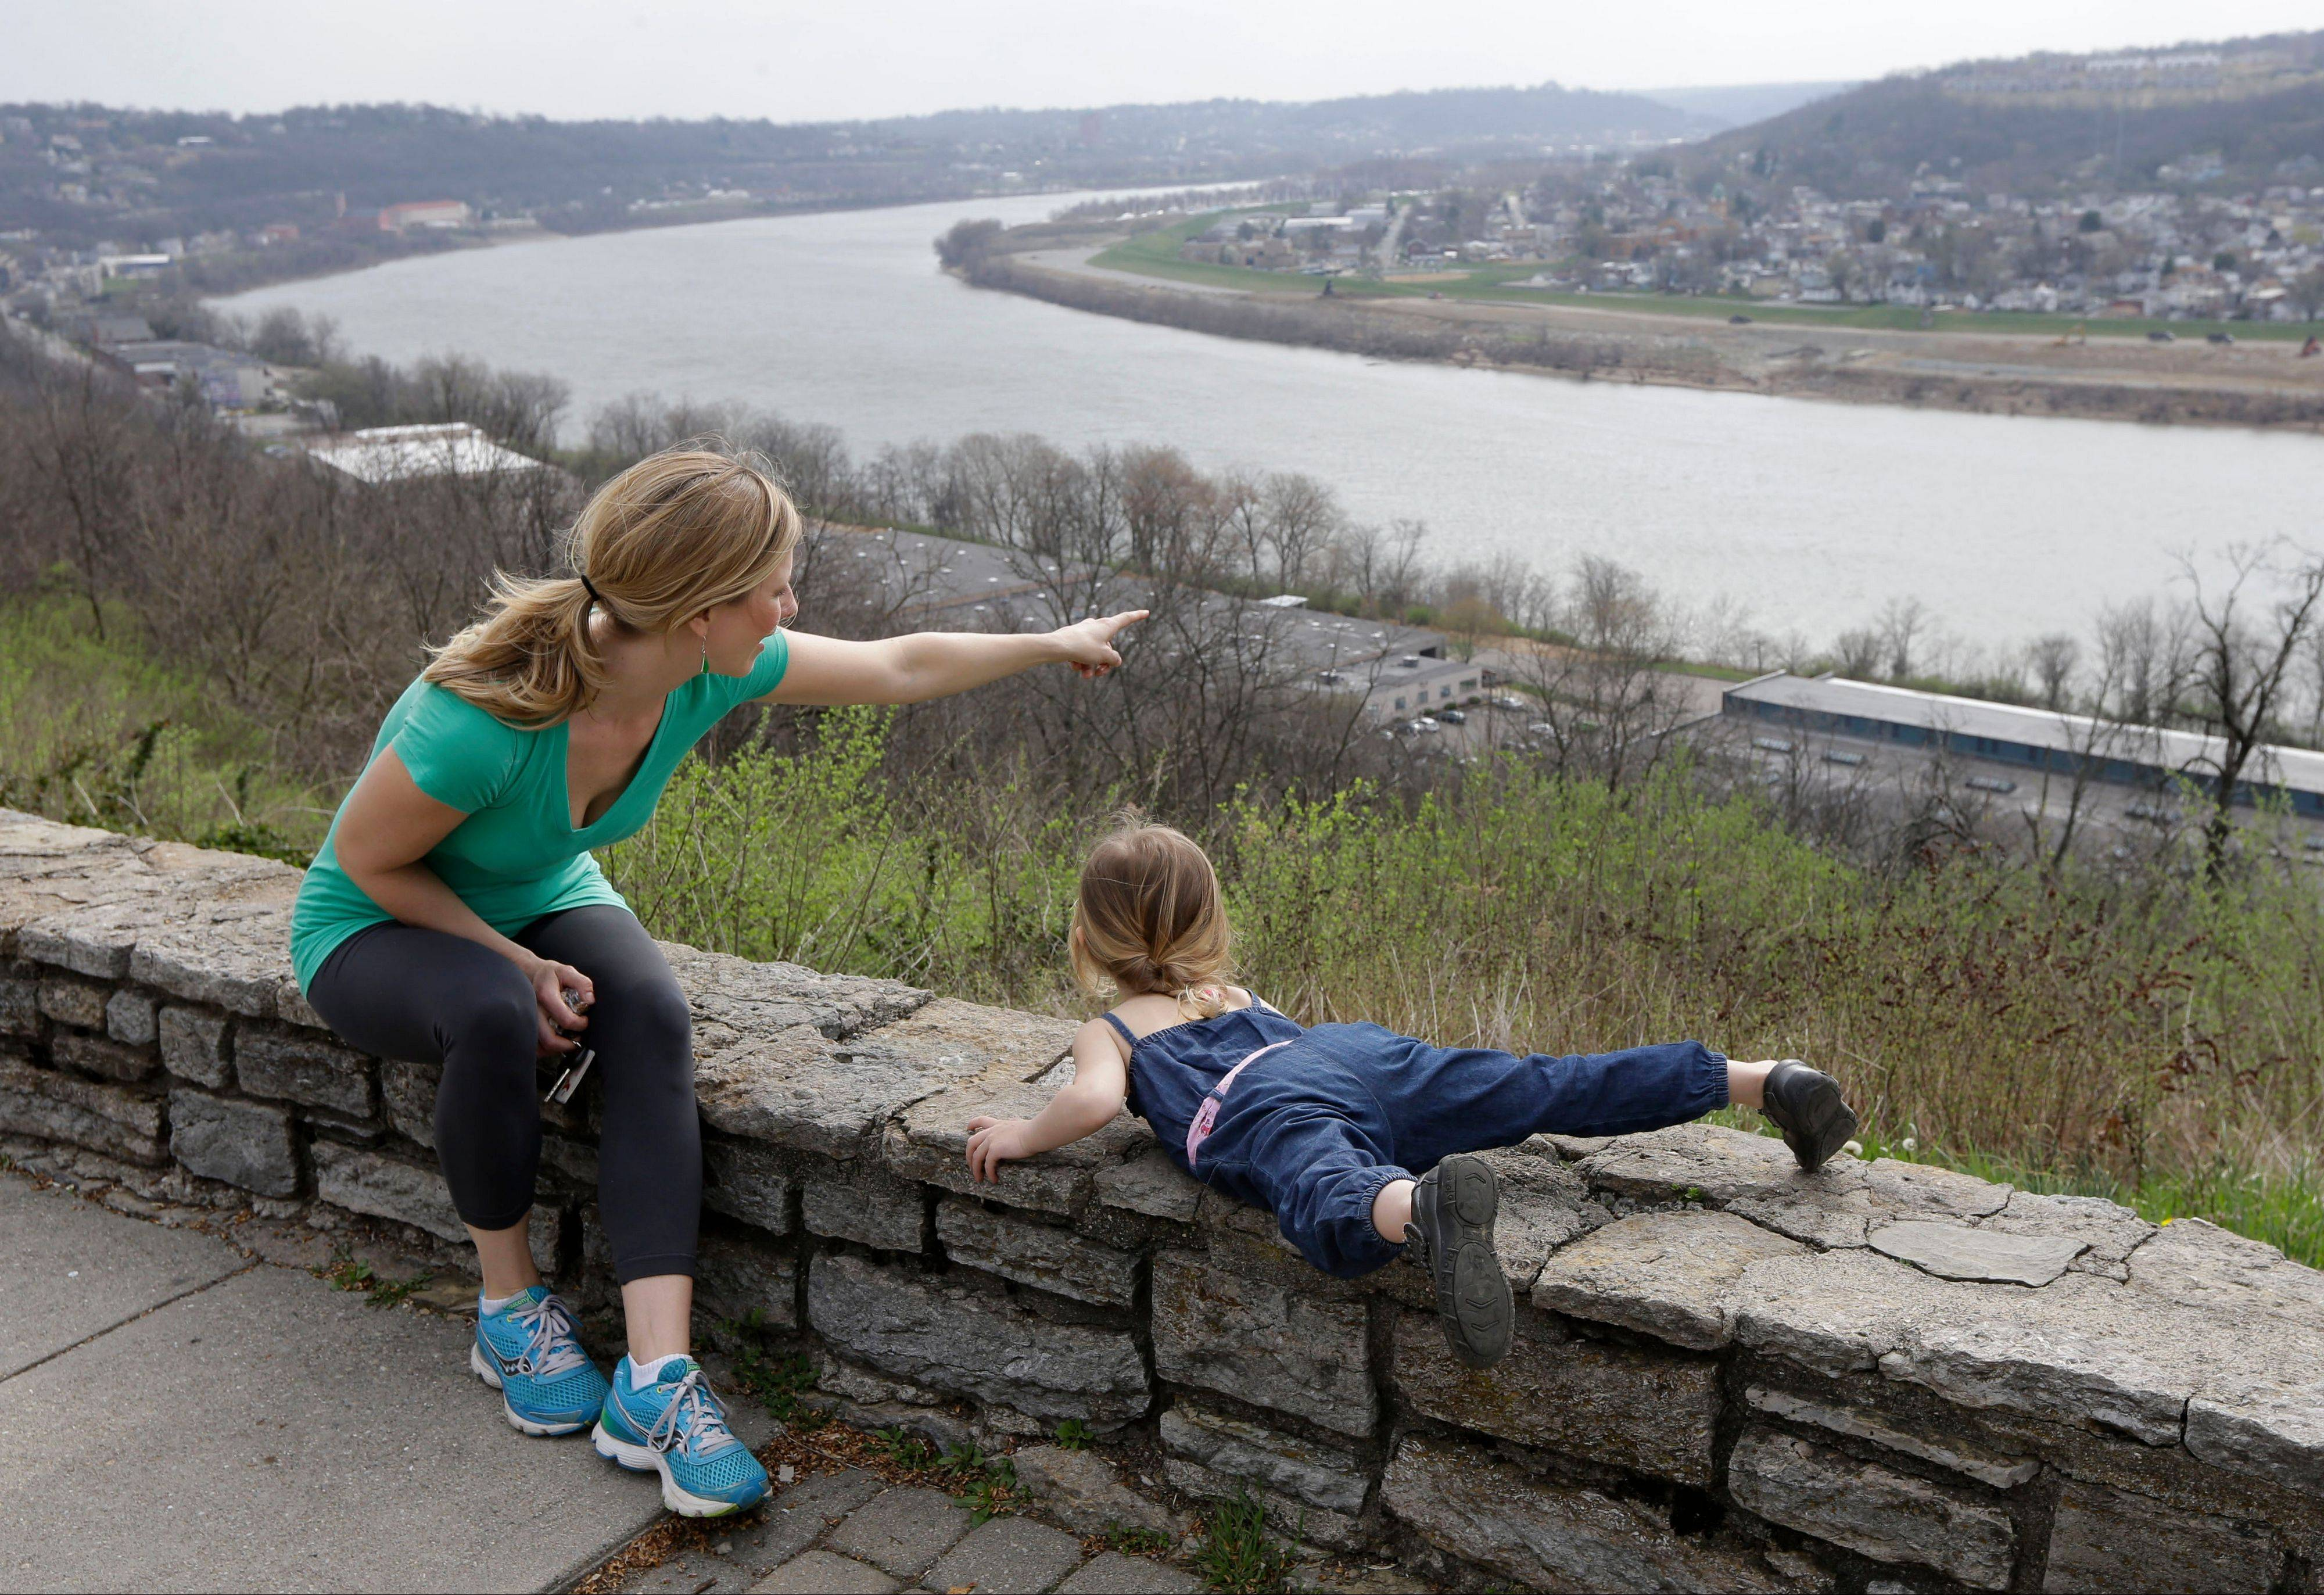 Rachel Mardis points out over the Ohio River toward northern Kentucky with her daughter Skylar, 2, at the Eden Park Overlook in Cincinnati.